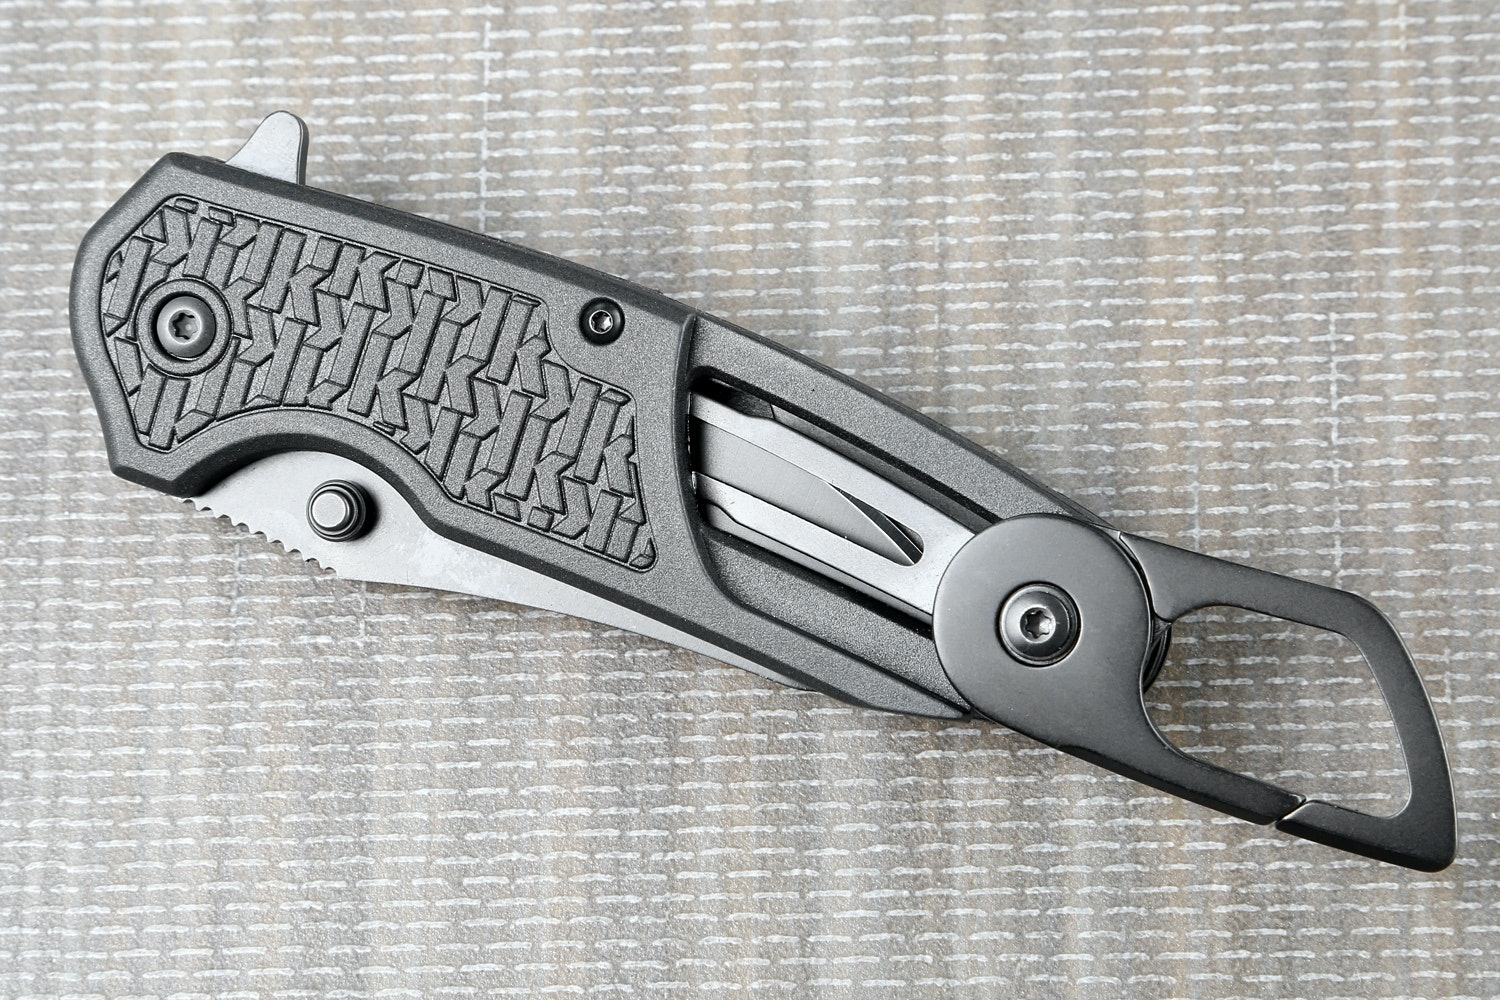 Kershaw Funxion Rescue Knife